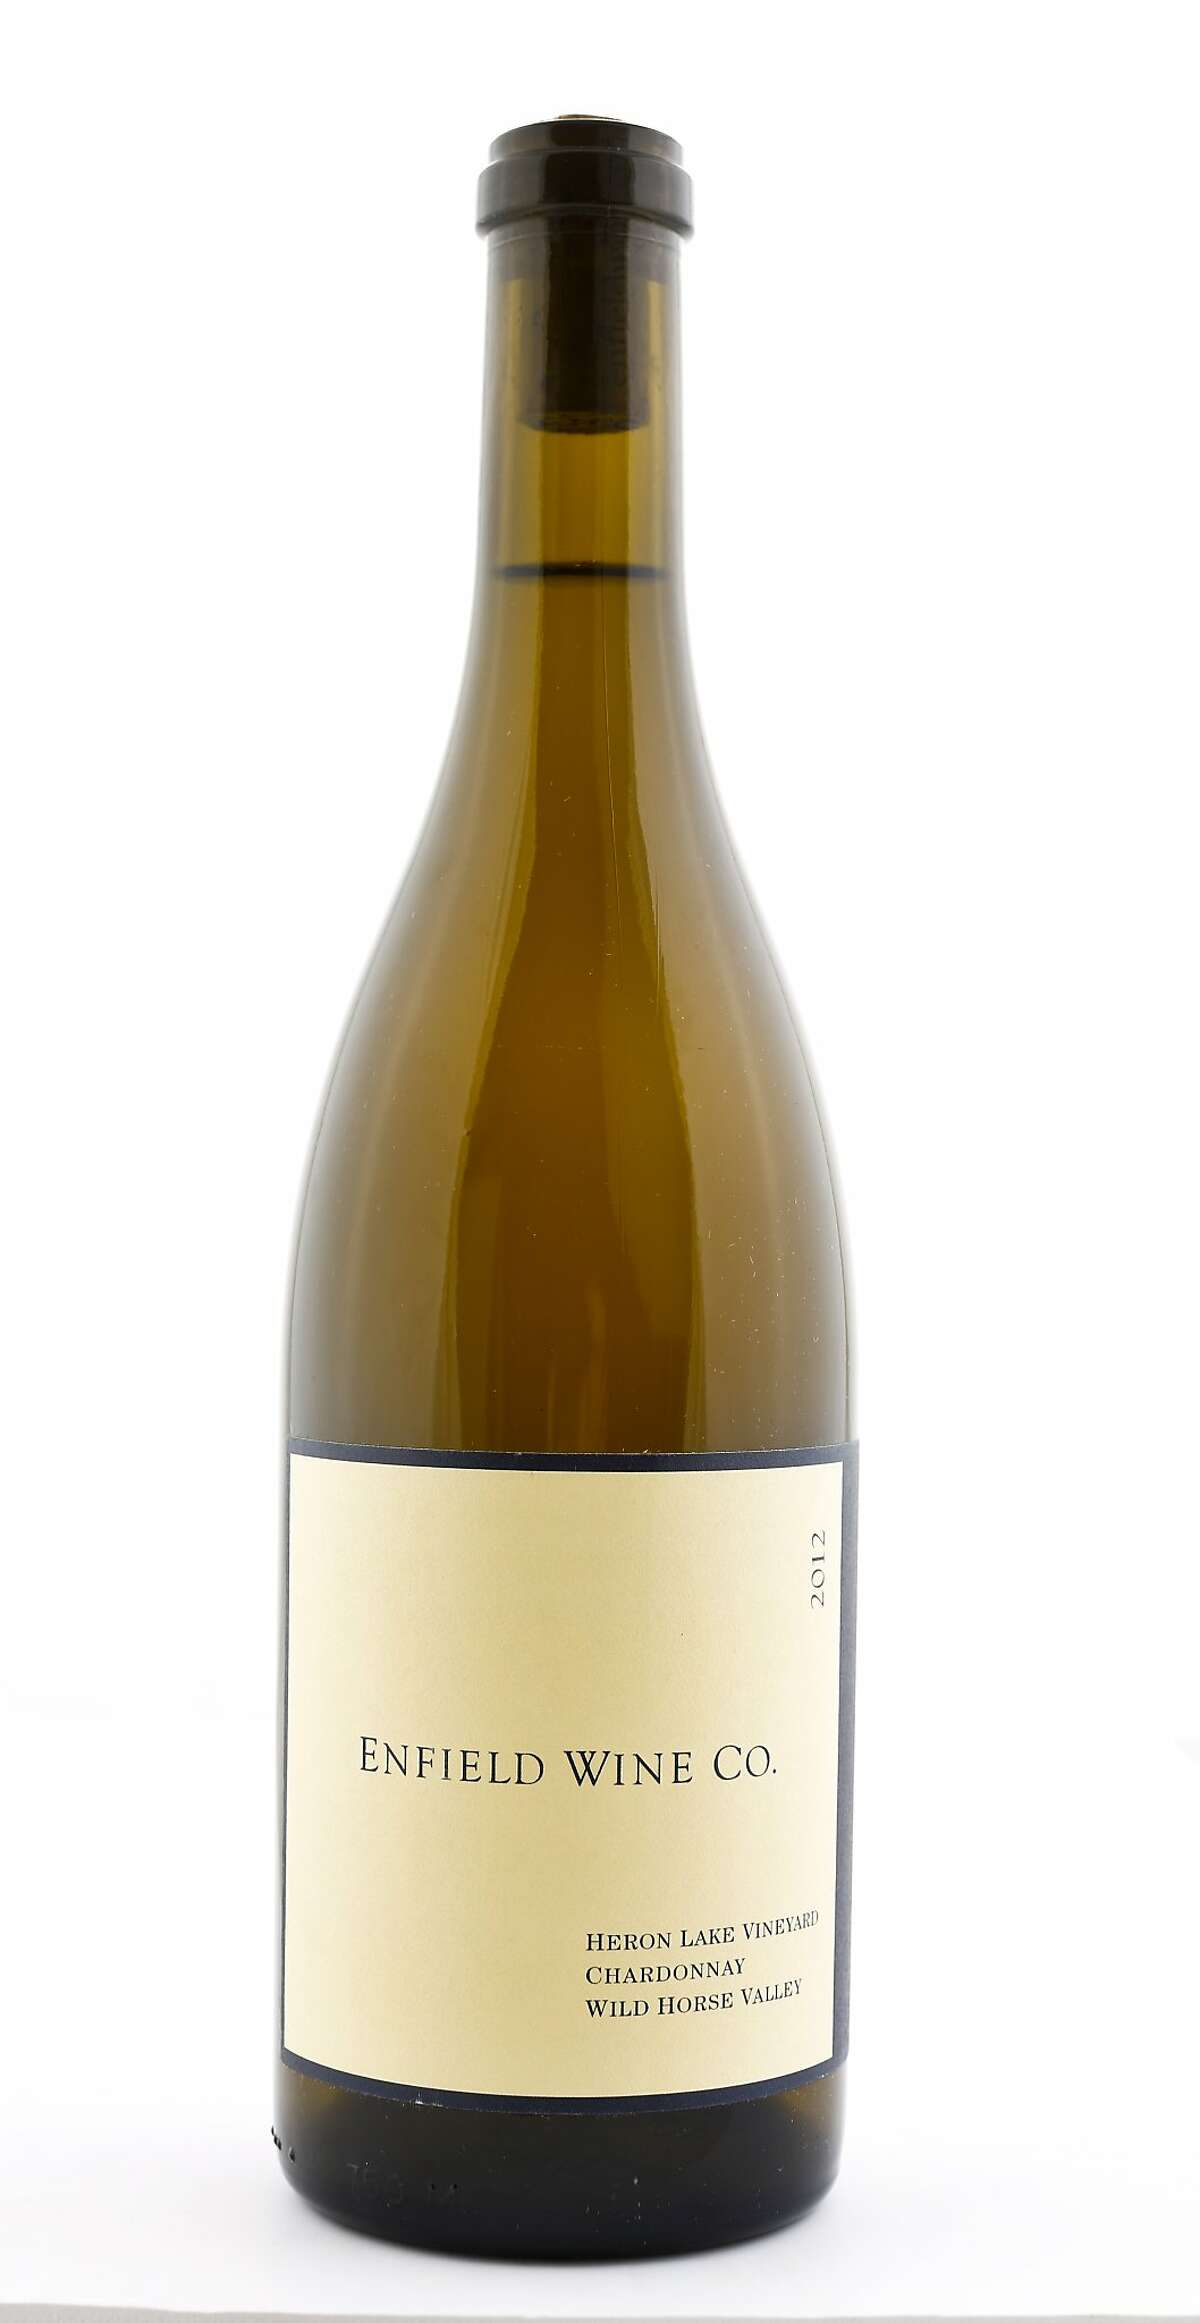 Enfield Wine Co. 2012 Chardonnay is seen on Thursday, Dec. 4, 2014 in San Francisco, Calif.